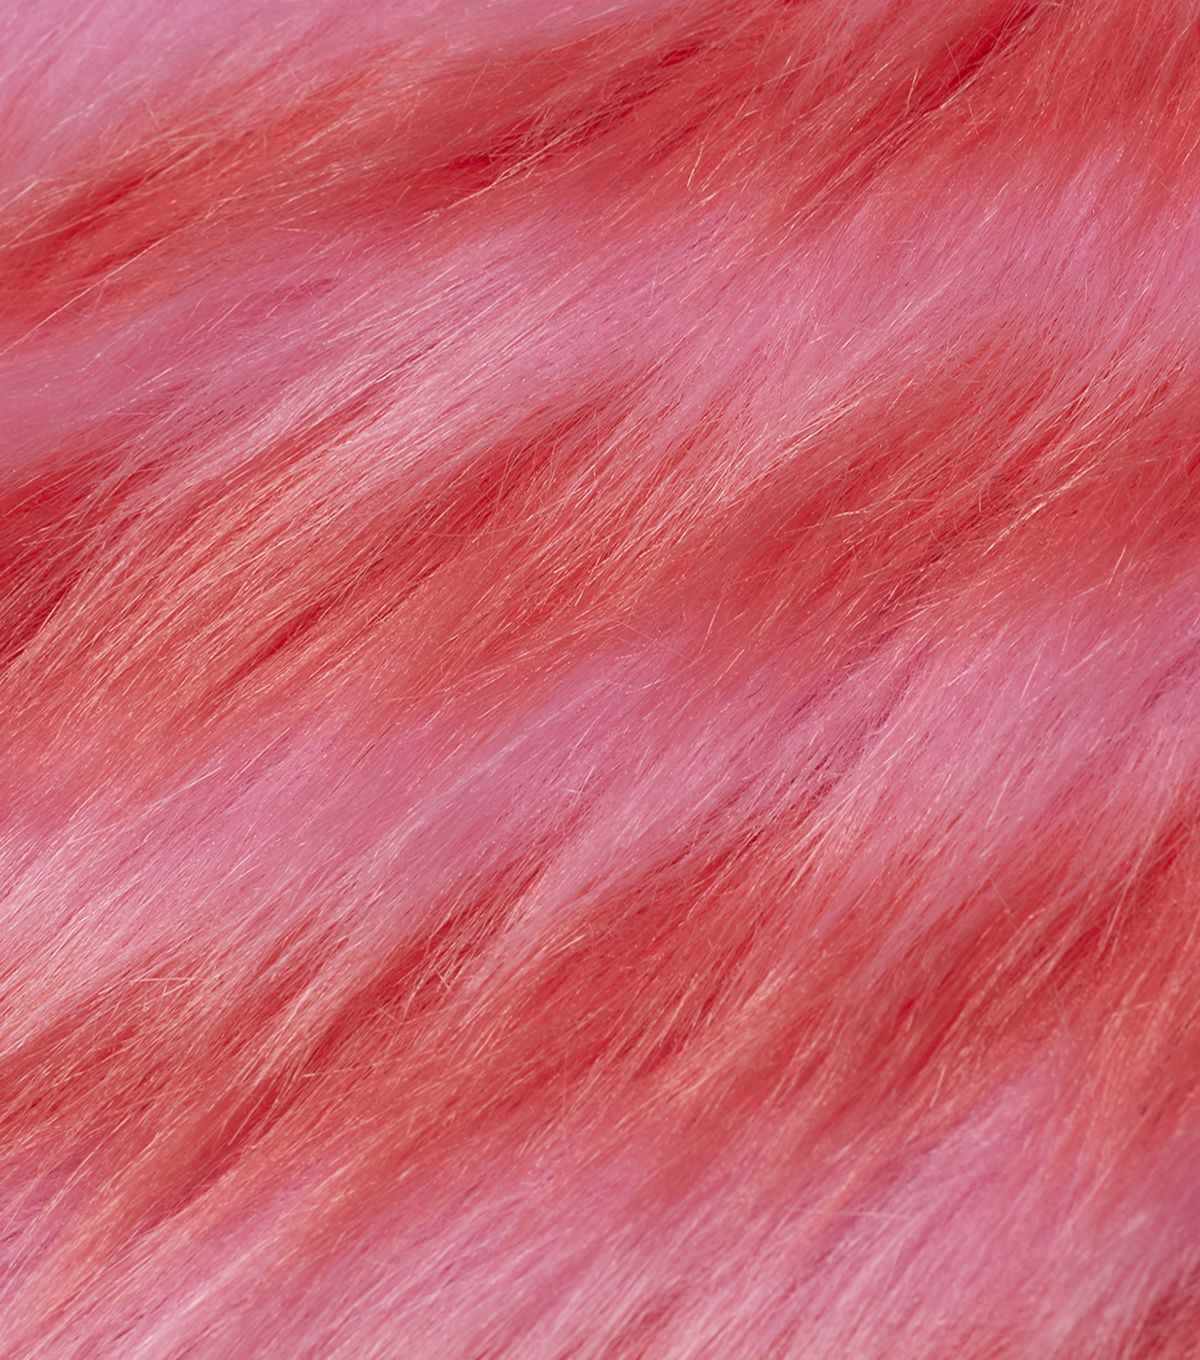 Fashion Faux Fur Fabric 59 Pink Orange Coats Joanns